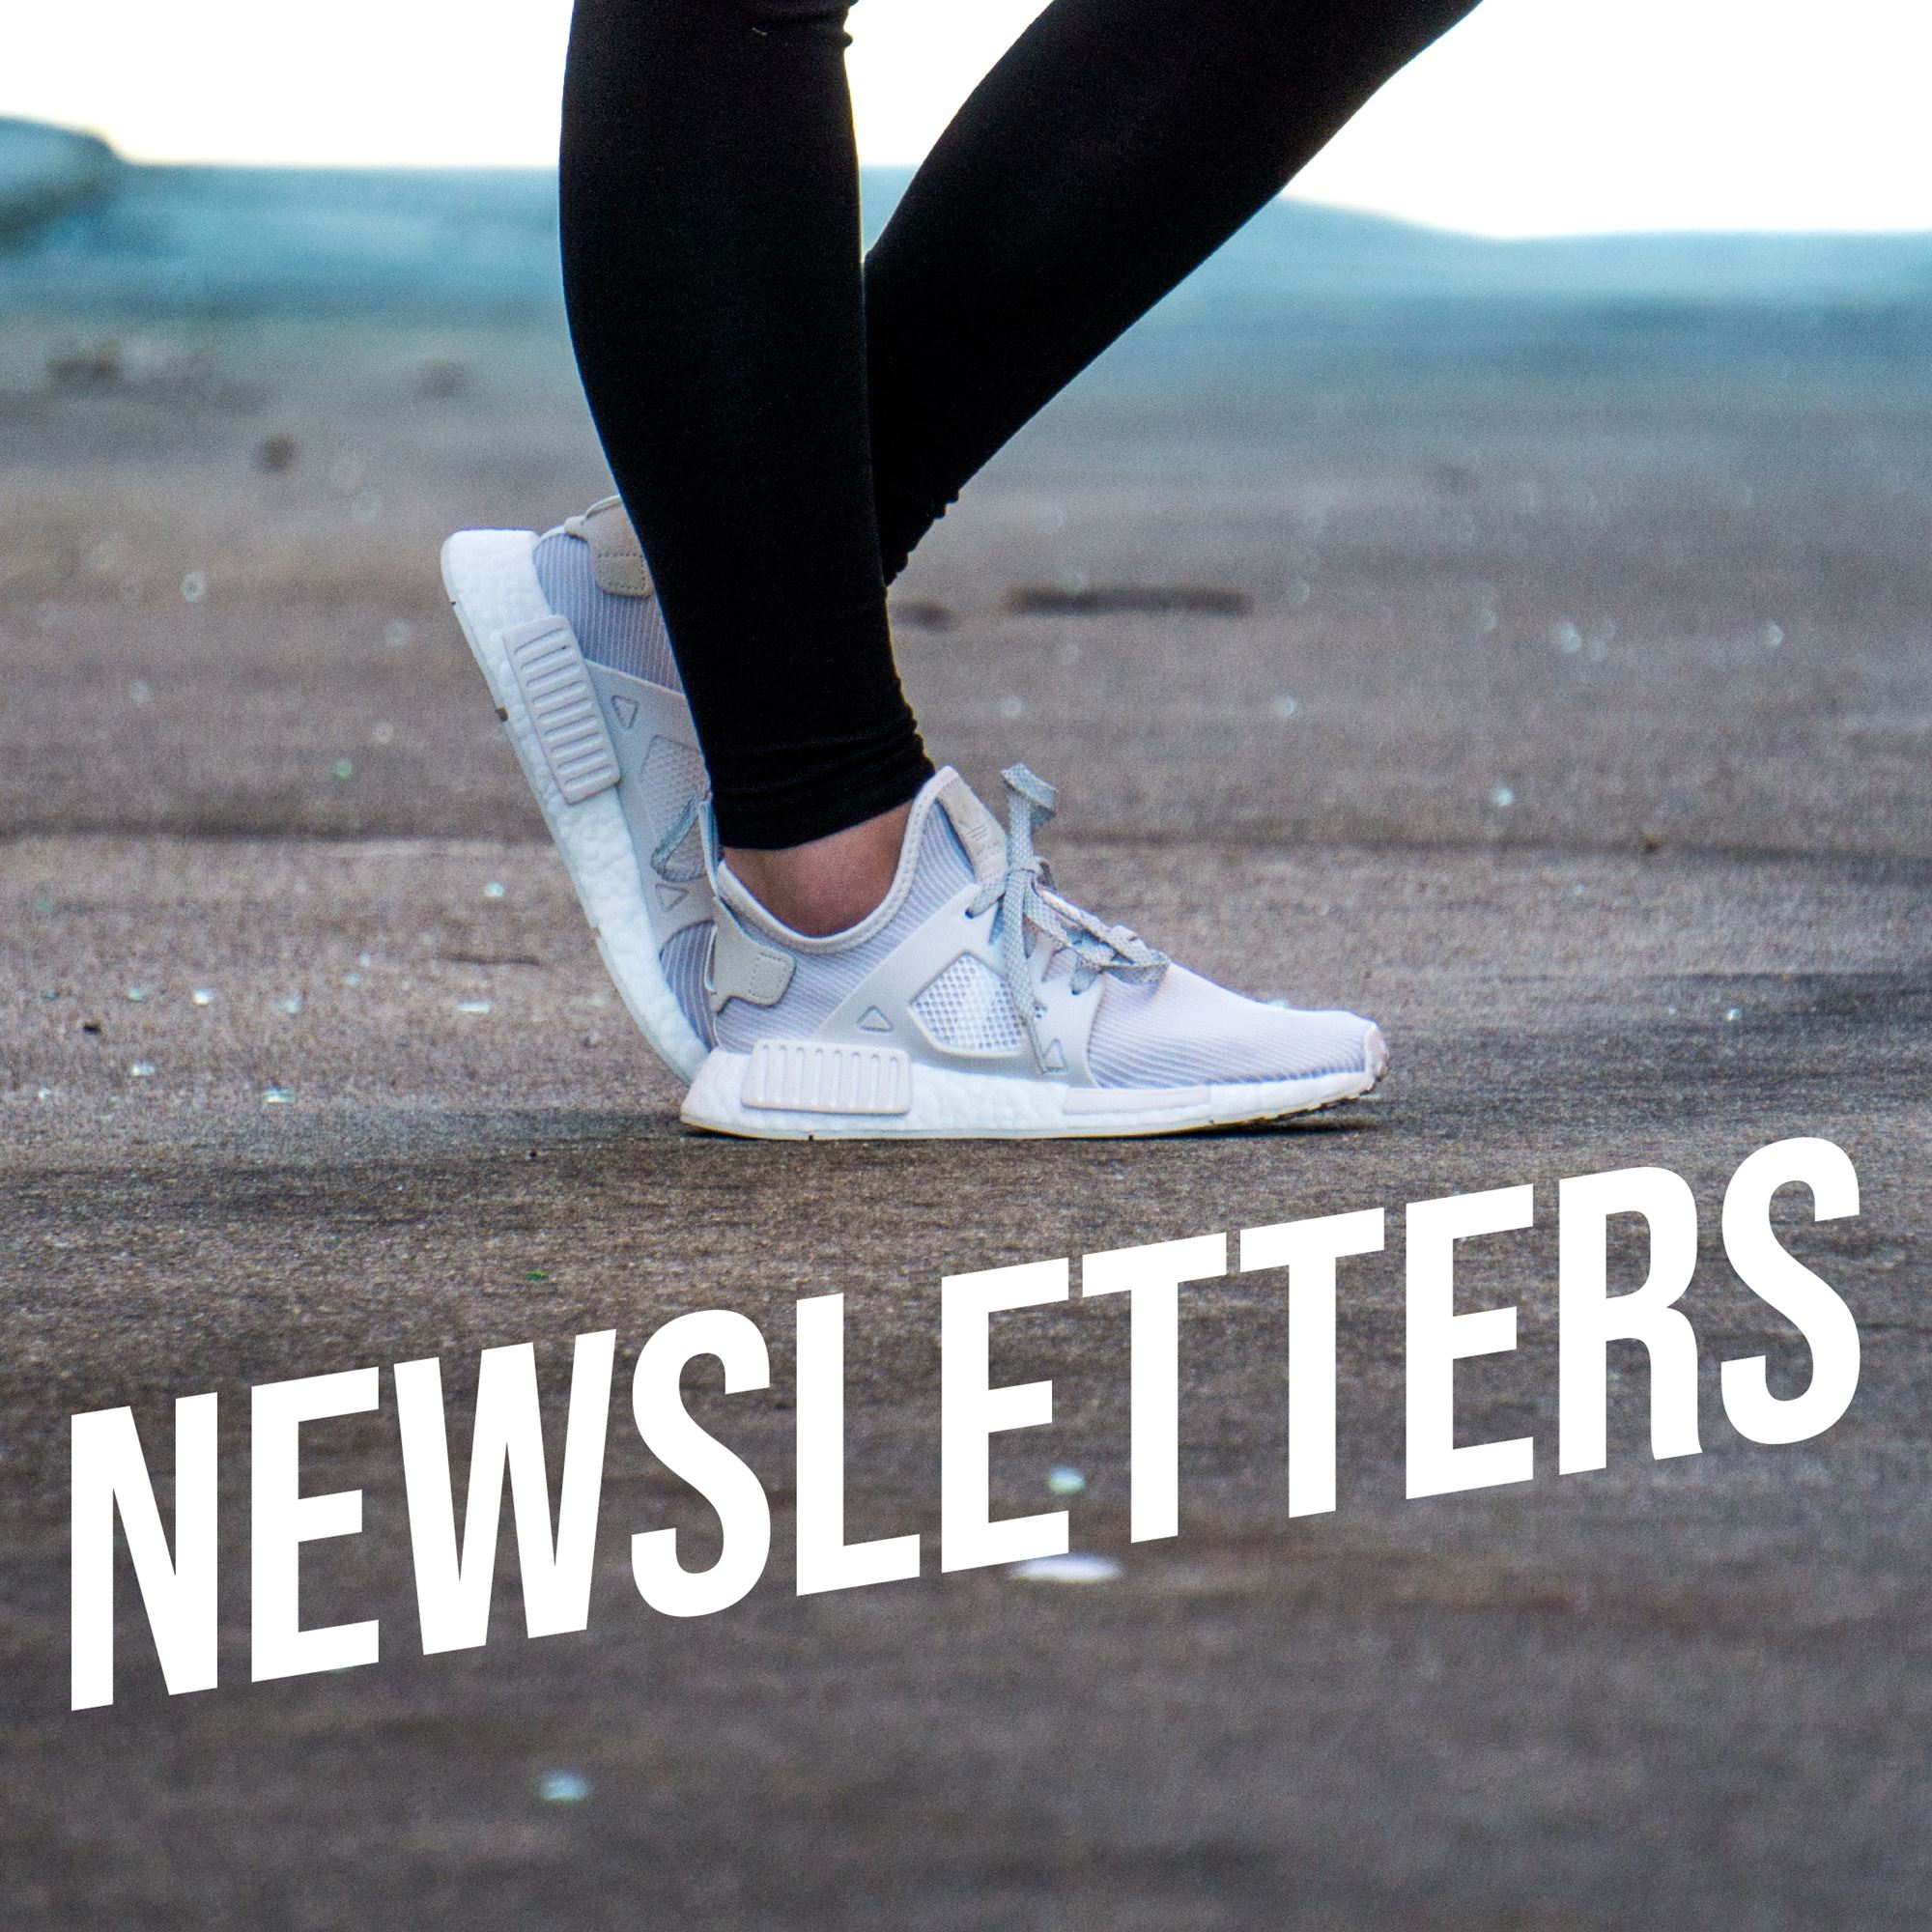 Participant Newsletters